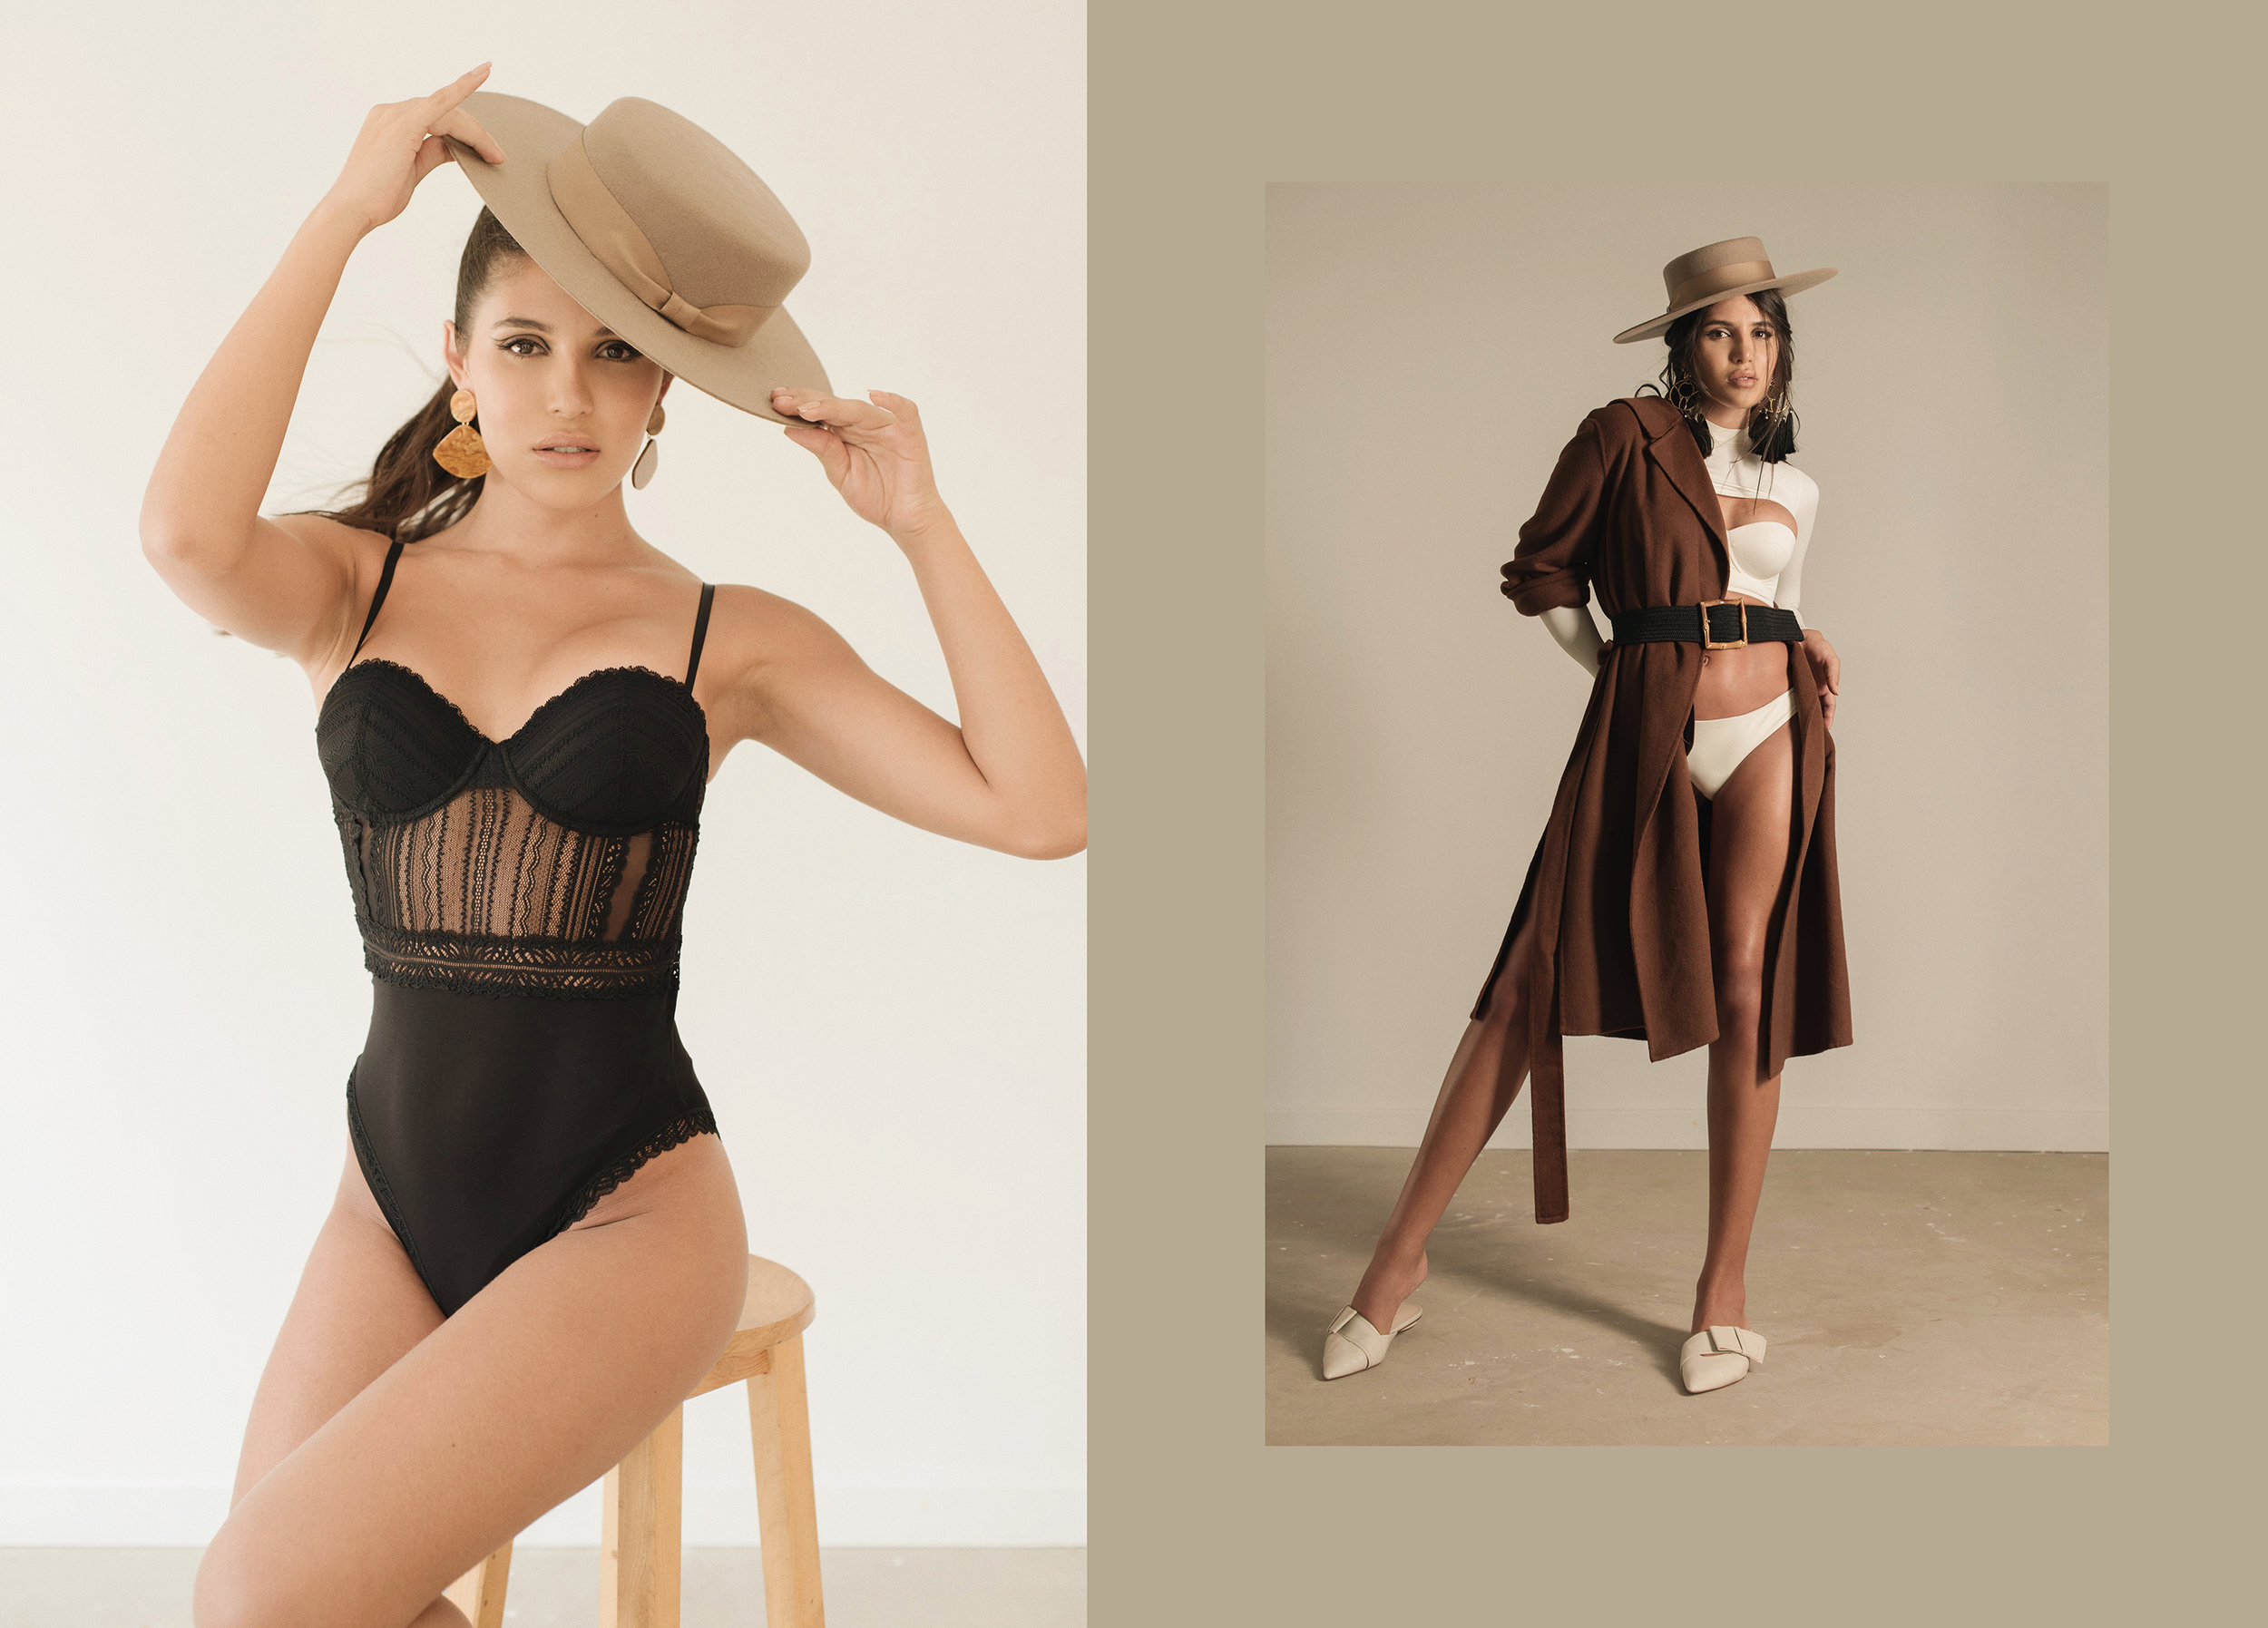 LEFT: Body. Oysho / Hat. María Elena Villamil / Earrings. Zara RIGHT: Swimsuit. Puntamar / Hat. María Elena Villamil / Earrings. Mercedes Salazar / Coat & shoes. Zara